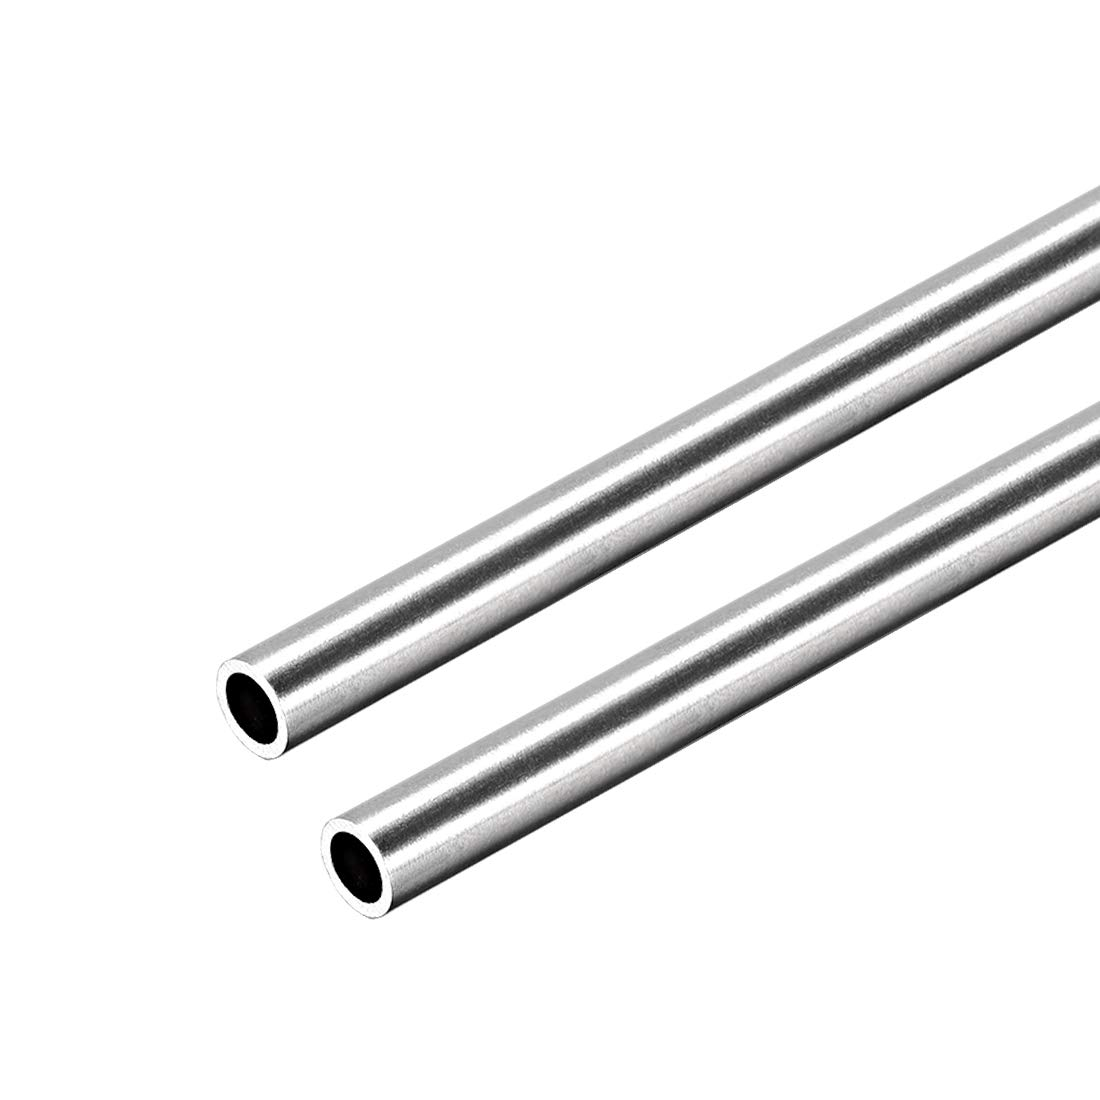 304 Stainless Steel Round Tubing 8mm OD 0.8mm Wall Thickness 250mm Length 4 Pcs